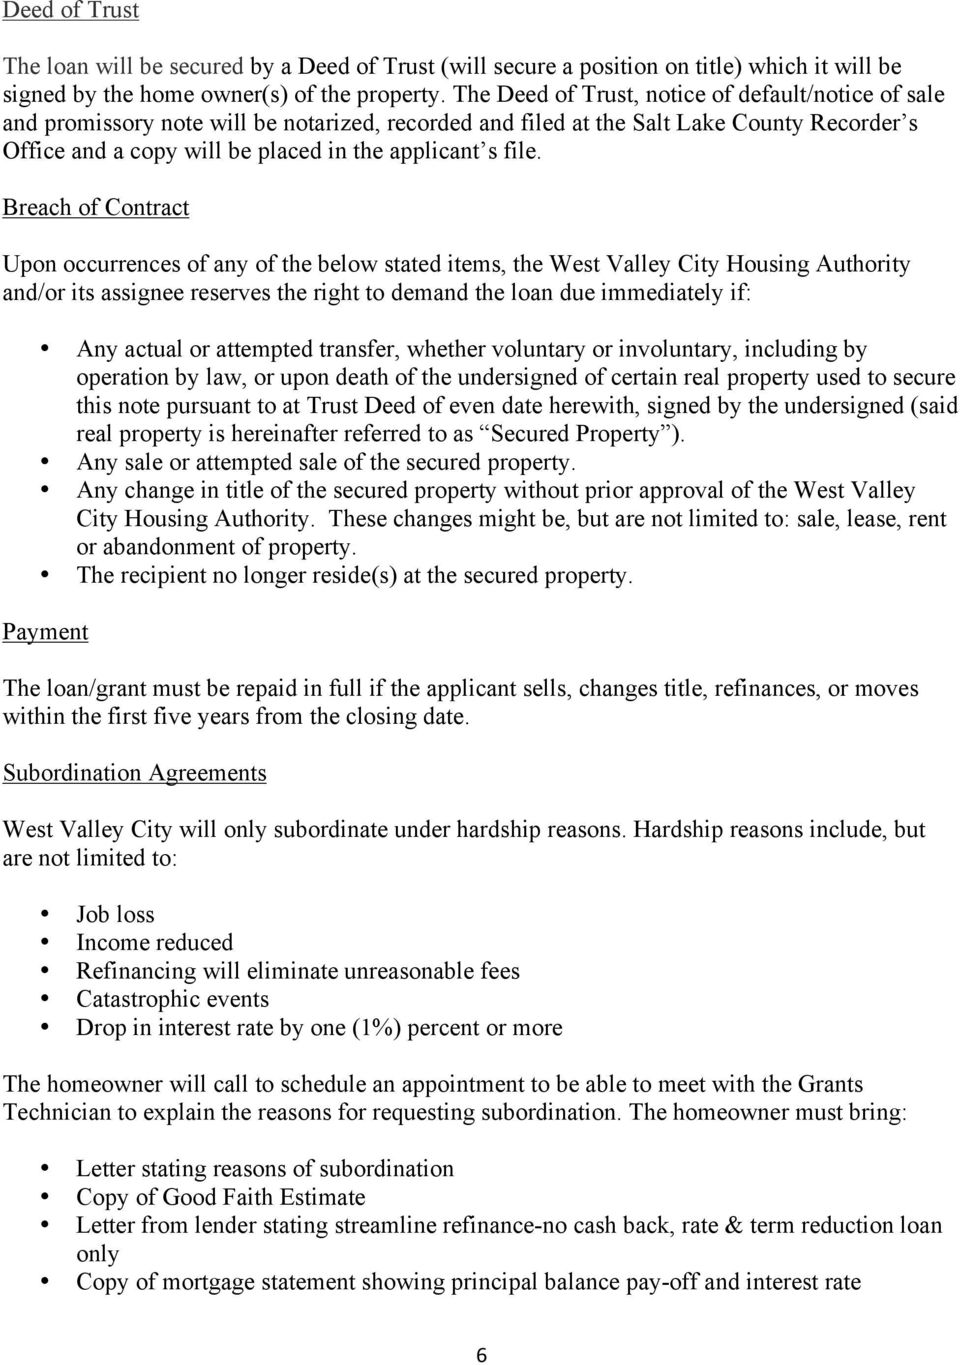 file. Breach of Contract Upon occurrences of any of the below stated items, the West Valley City Housing Authority and/or its assignee reserves the right to demand the loan due immediately if: Any